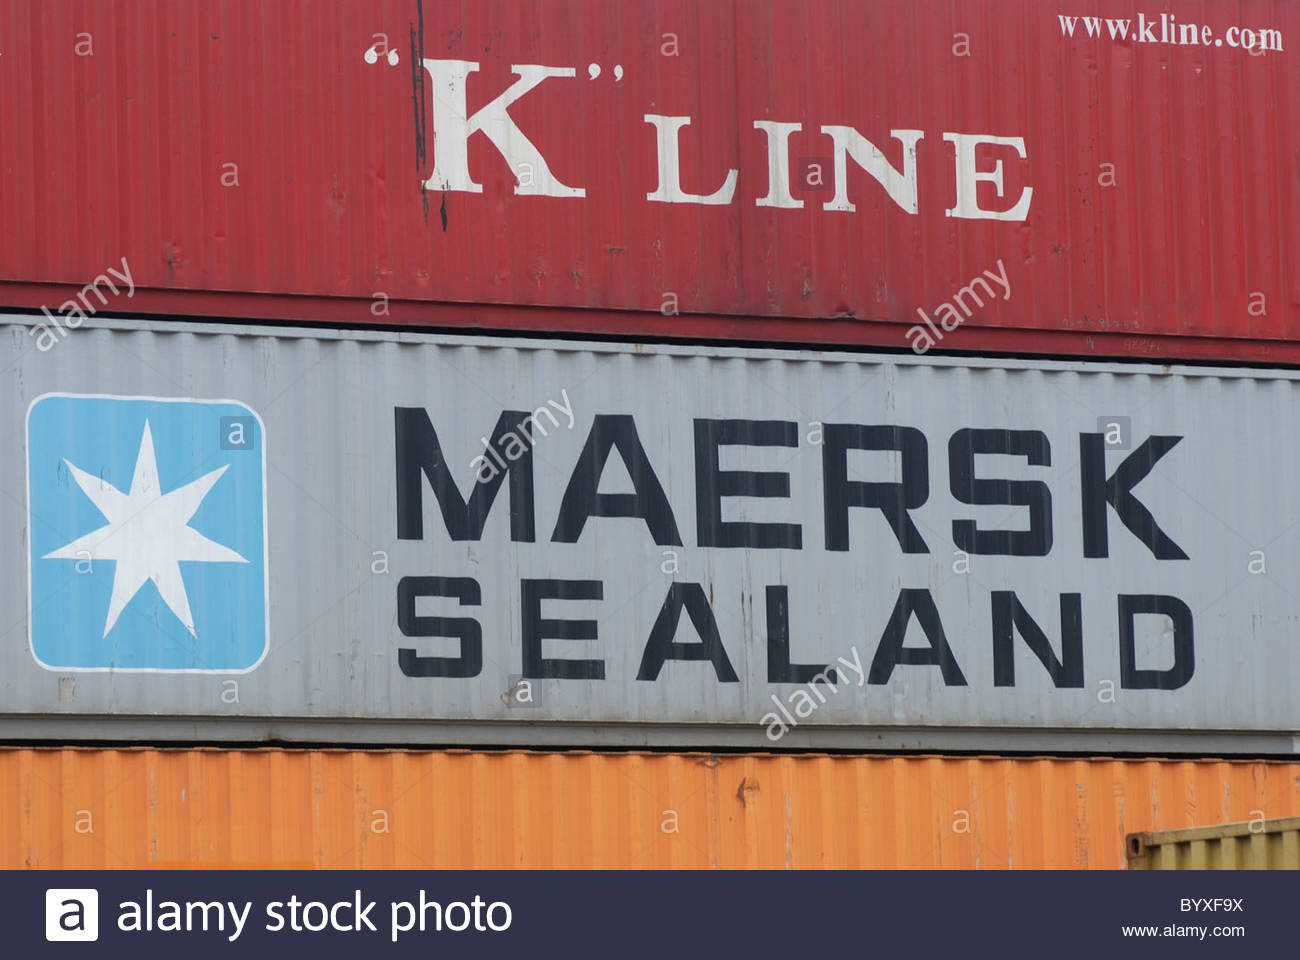 Basel Switzerland - Basler container terminal. 'K' line and Maersk Sealand containers. - Stock Image